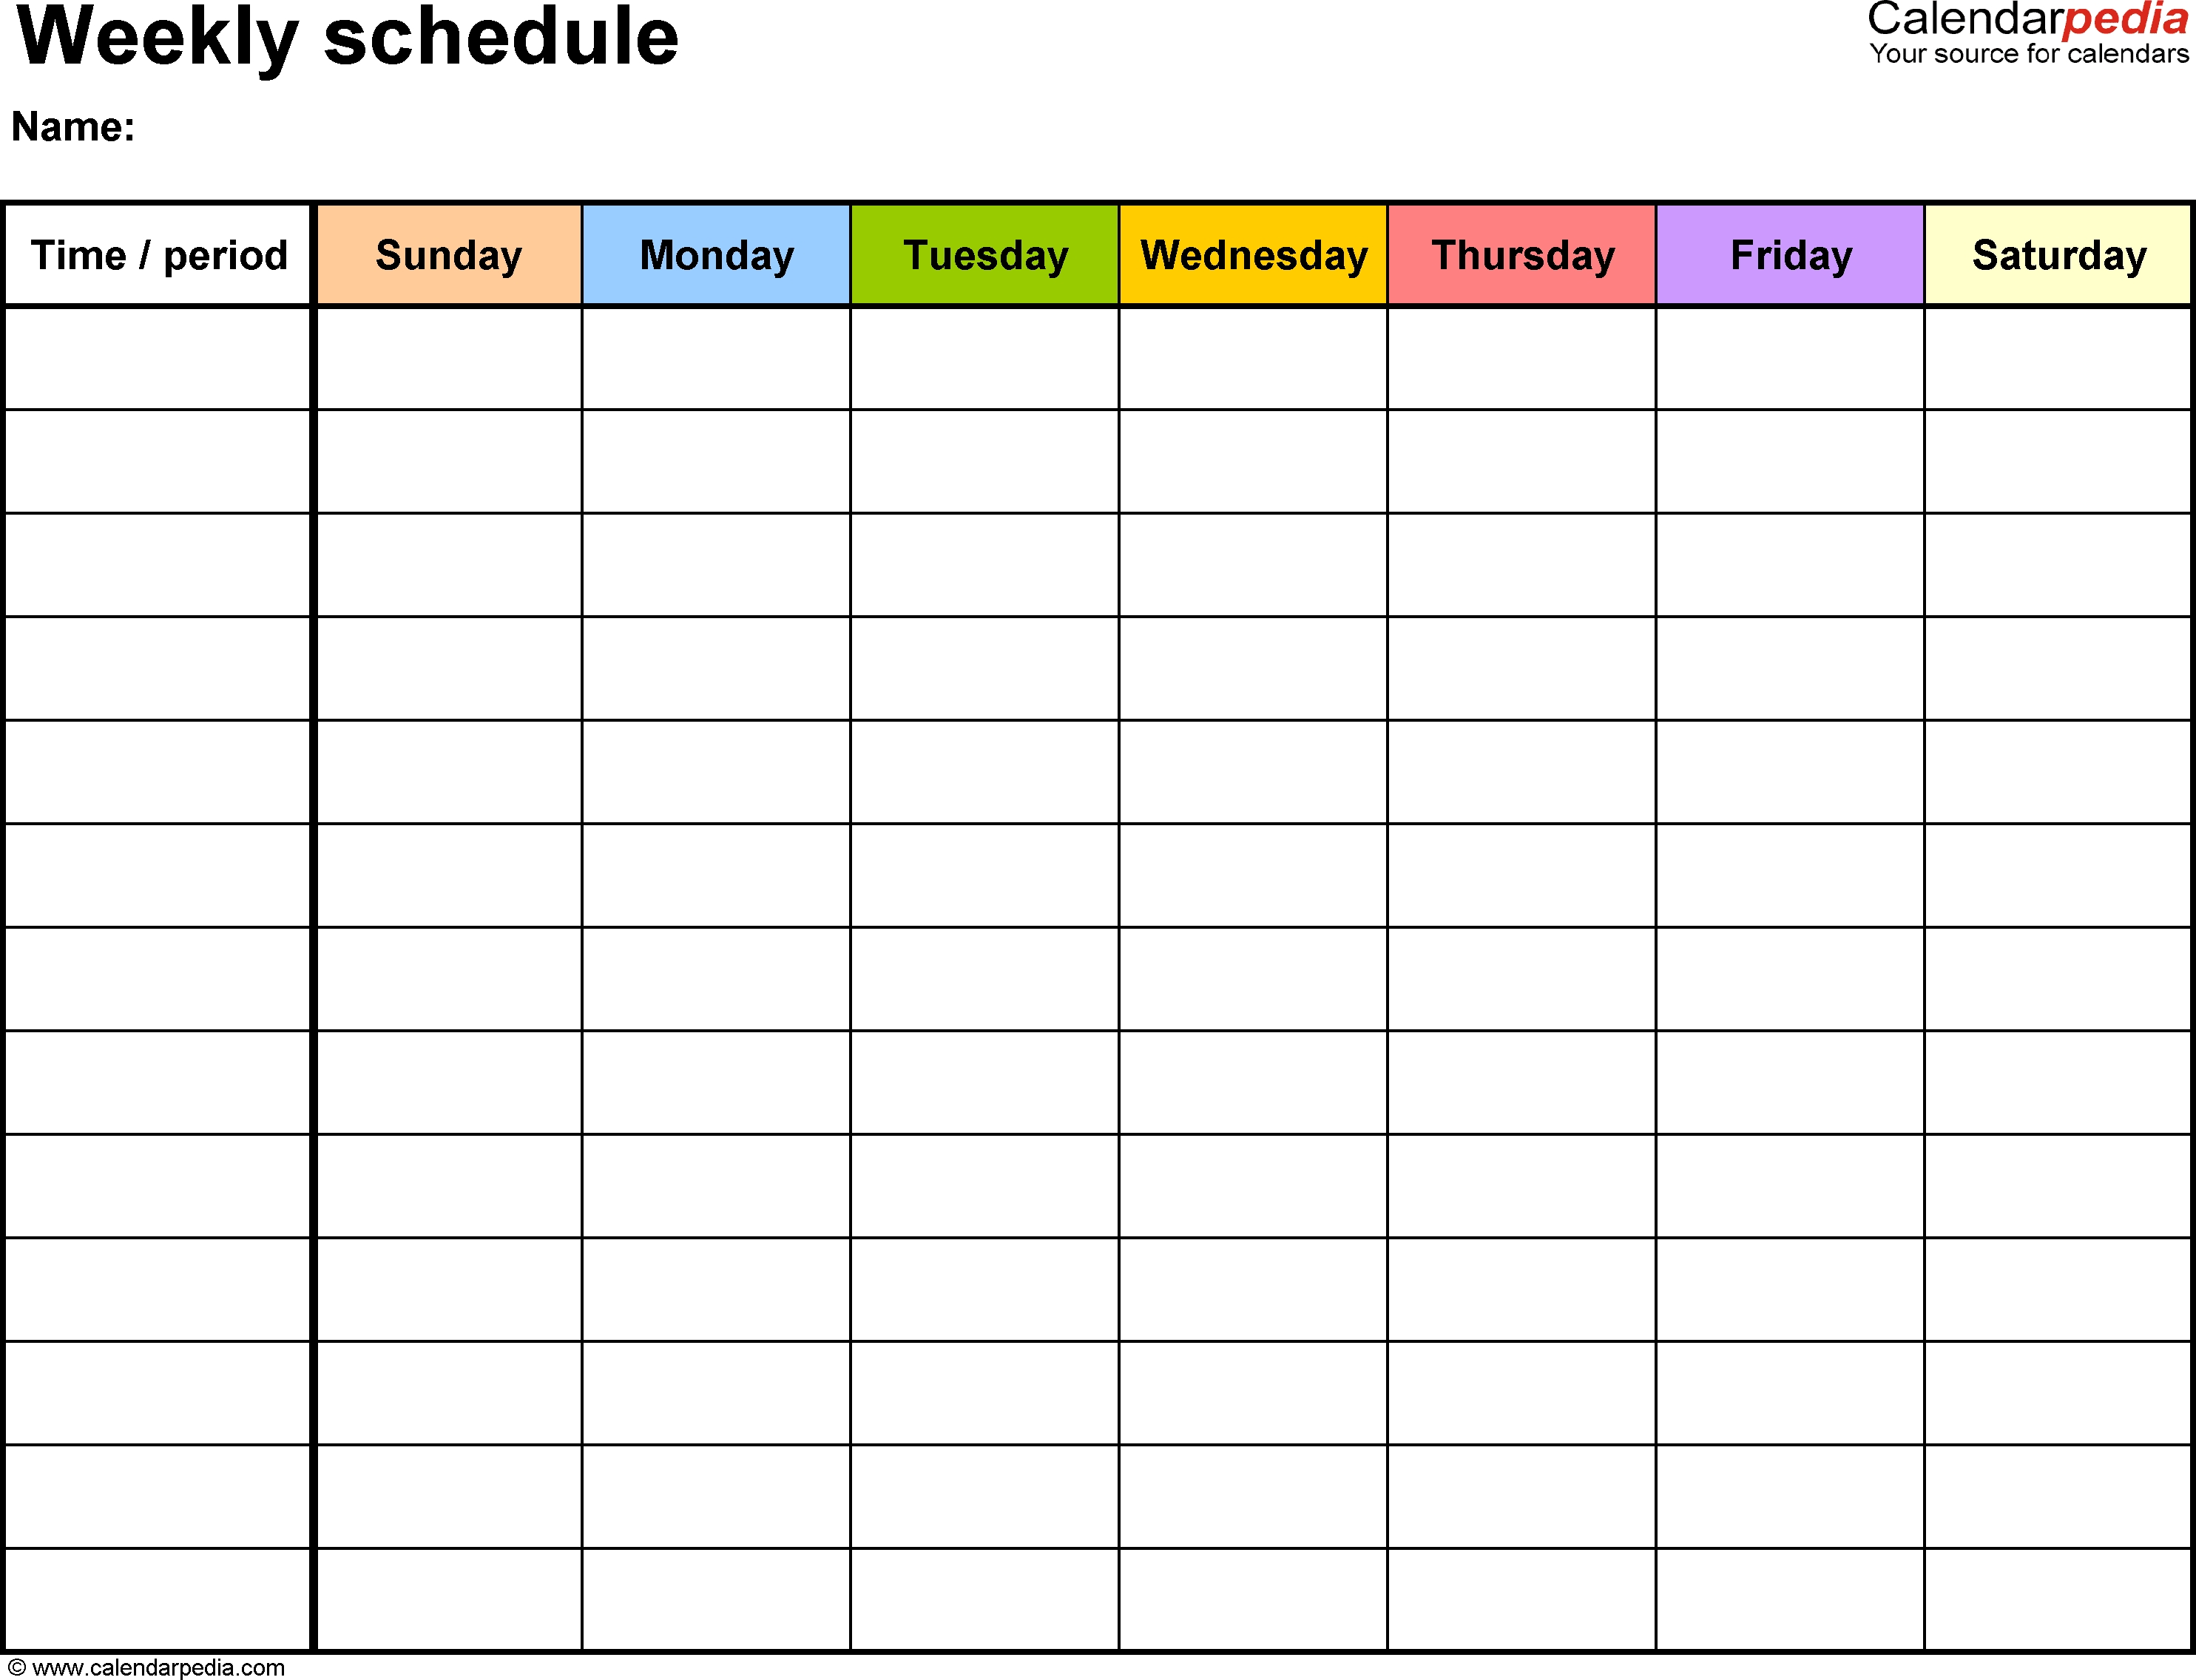 Free Weekly Schedule Templates For Excel - 18 Templates in Monday To Friday Timetable Excel